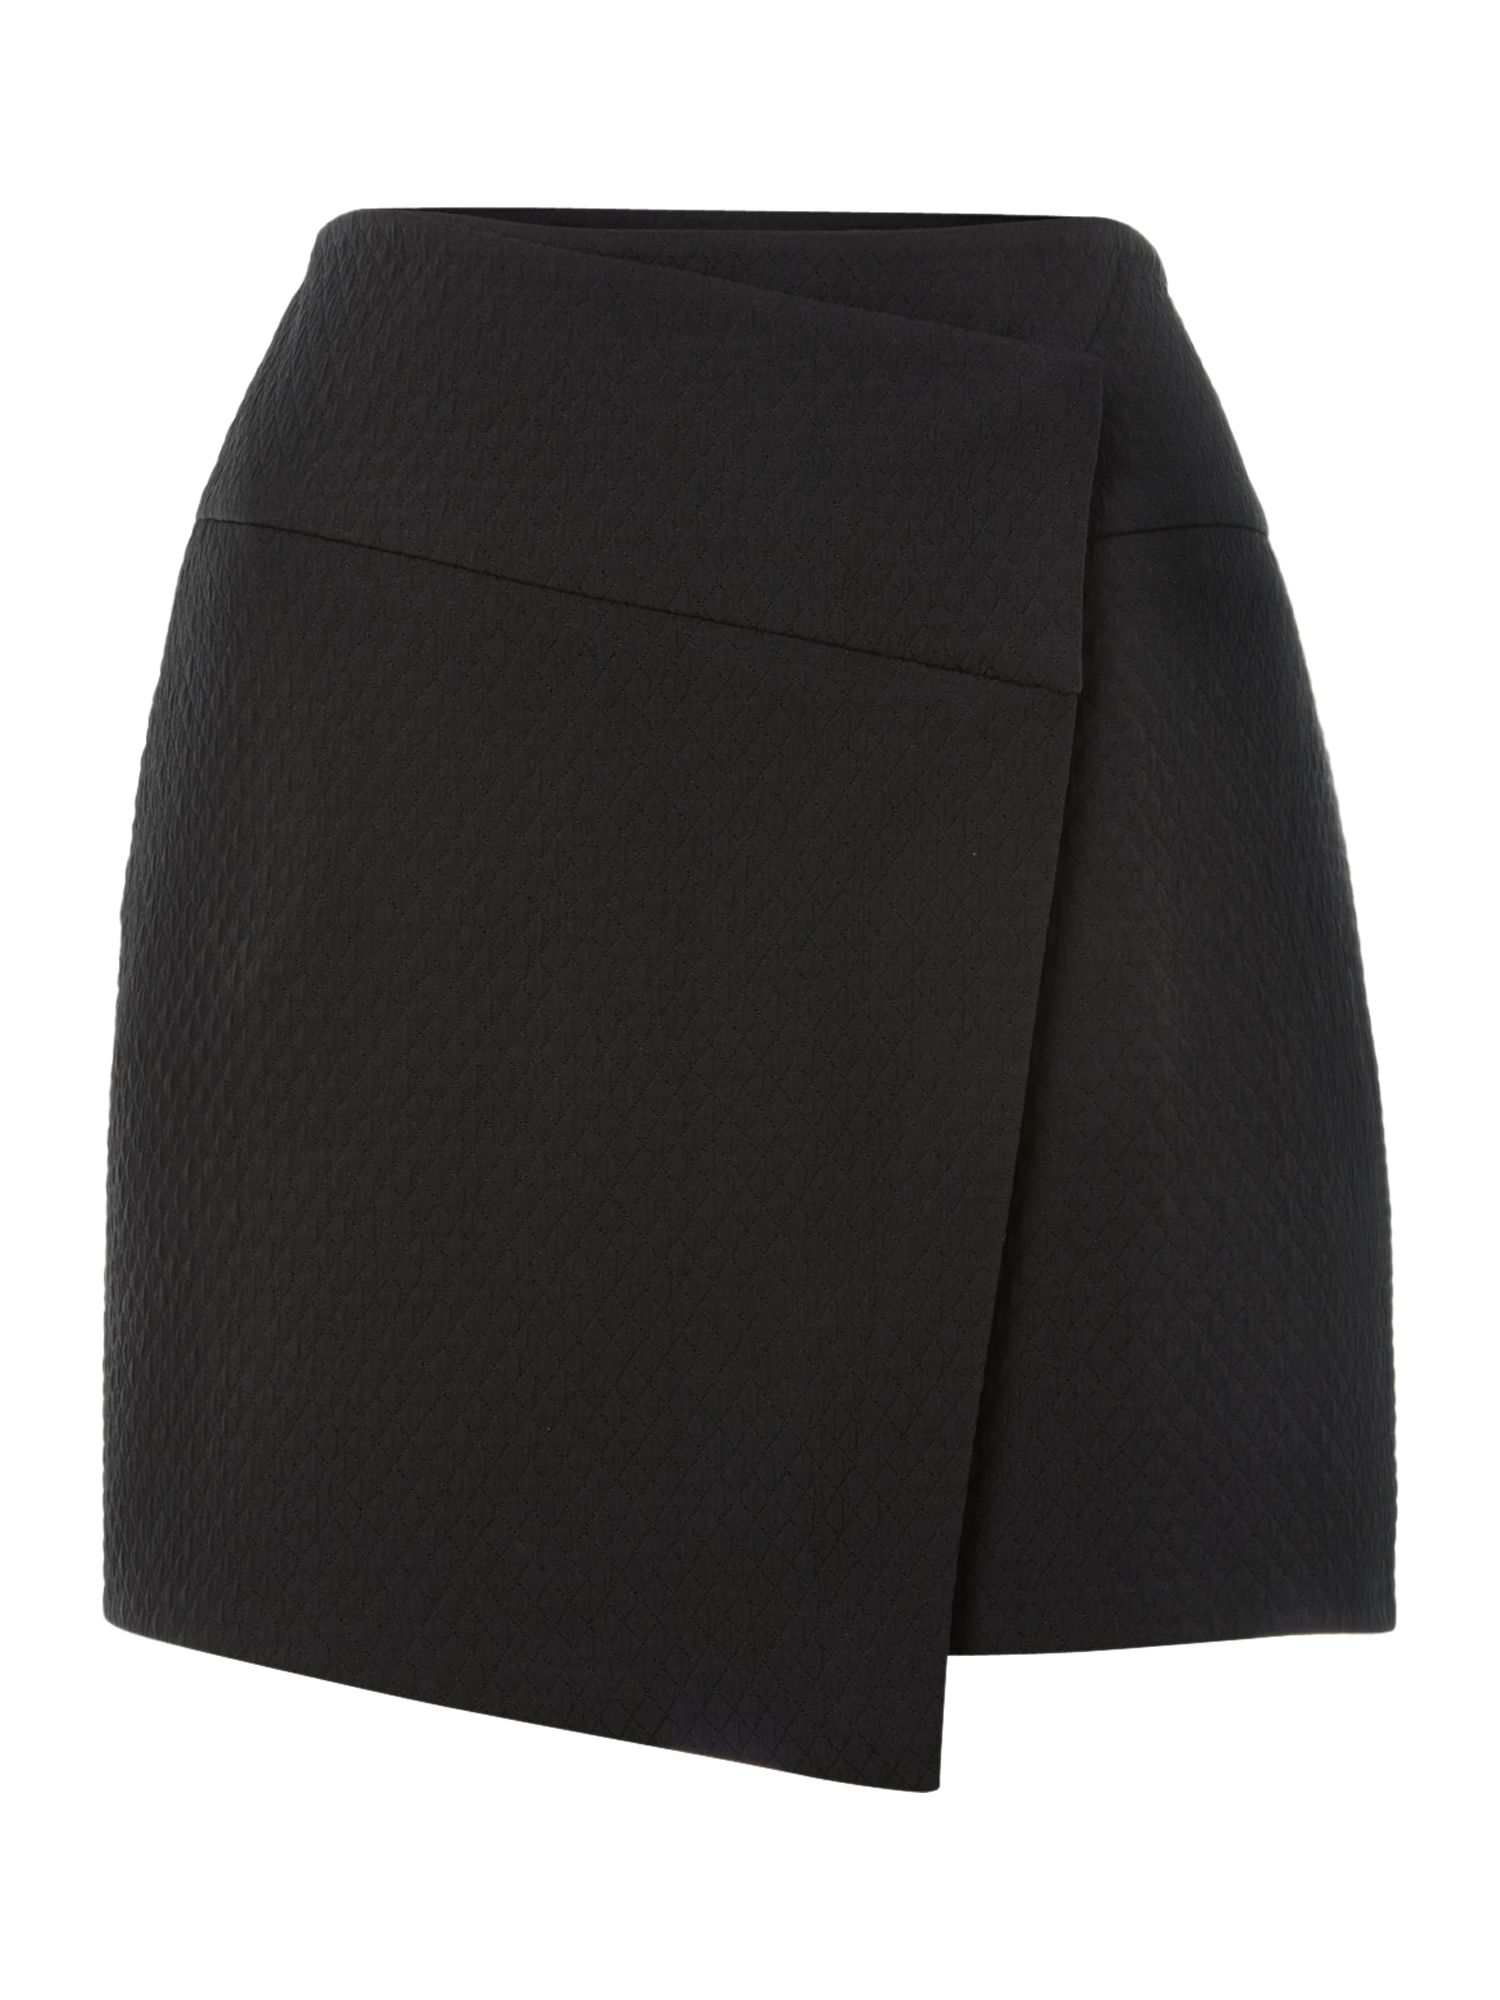 Asymetric skirt